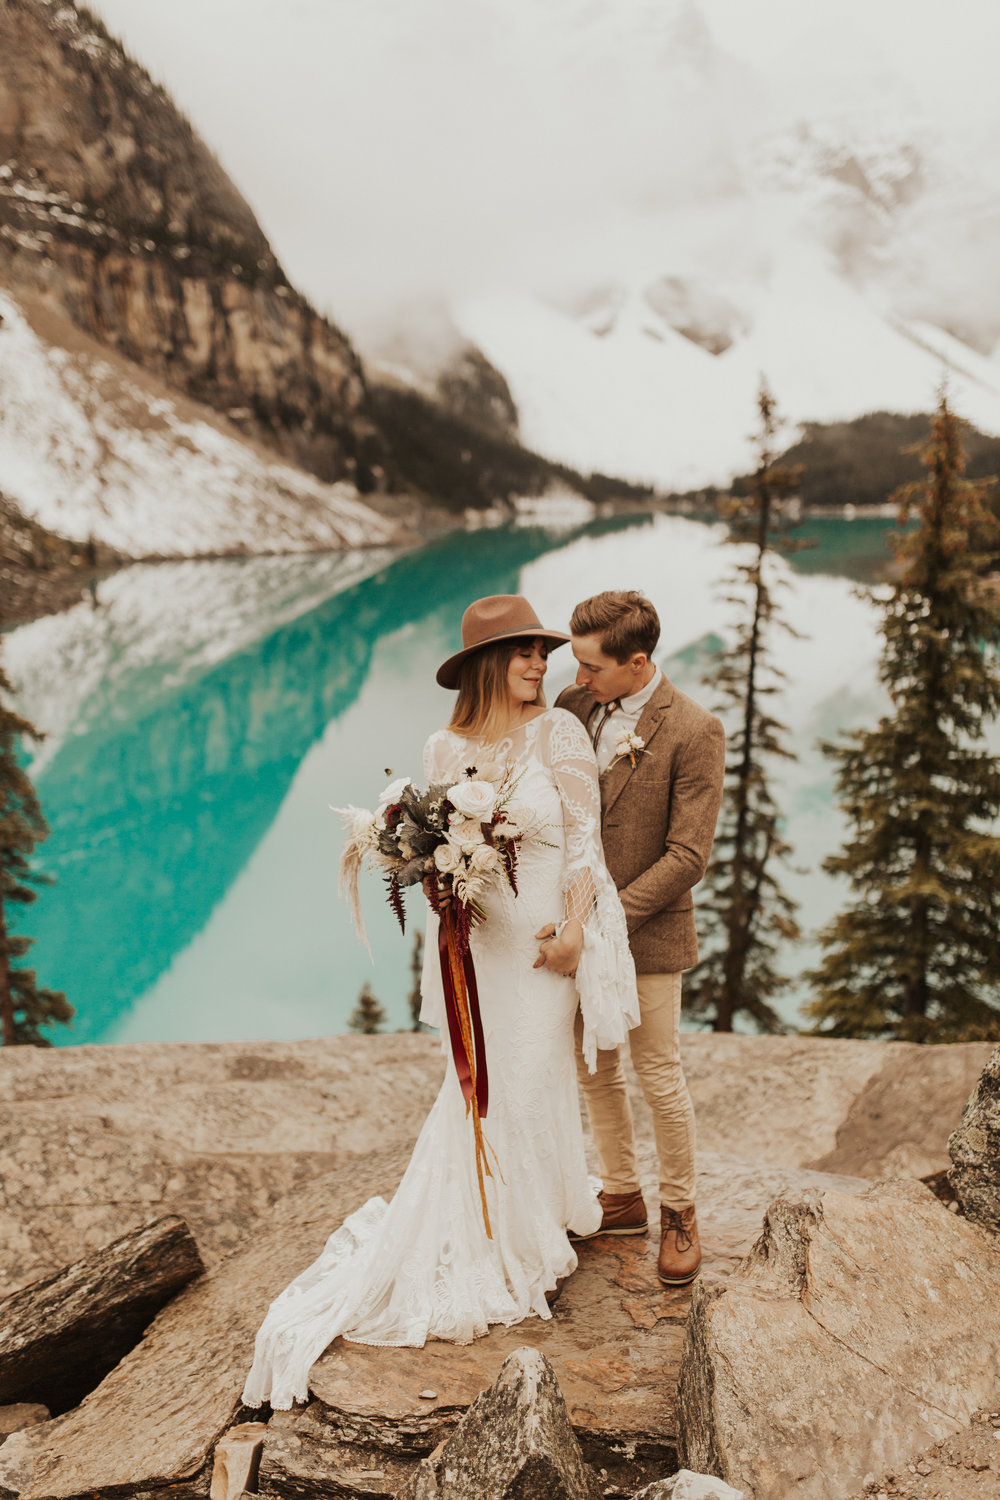 Banff Elopement l Lake Moraine Elopement l Vintage Bolo Tie l Pampas Grass Boho Boquet l Rue Design Wedding Dress l Banff Wedding Photographer l Destination Wedding Photographer l Katy Rose Photo_-36.jpg